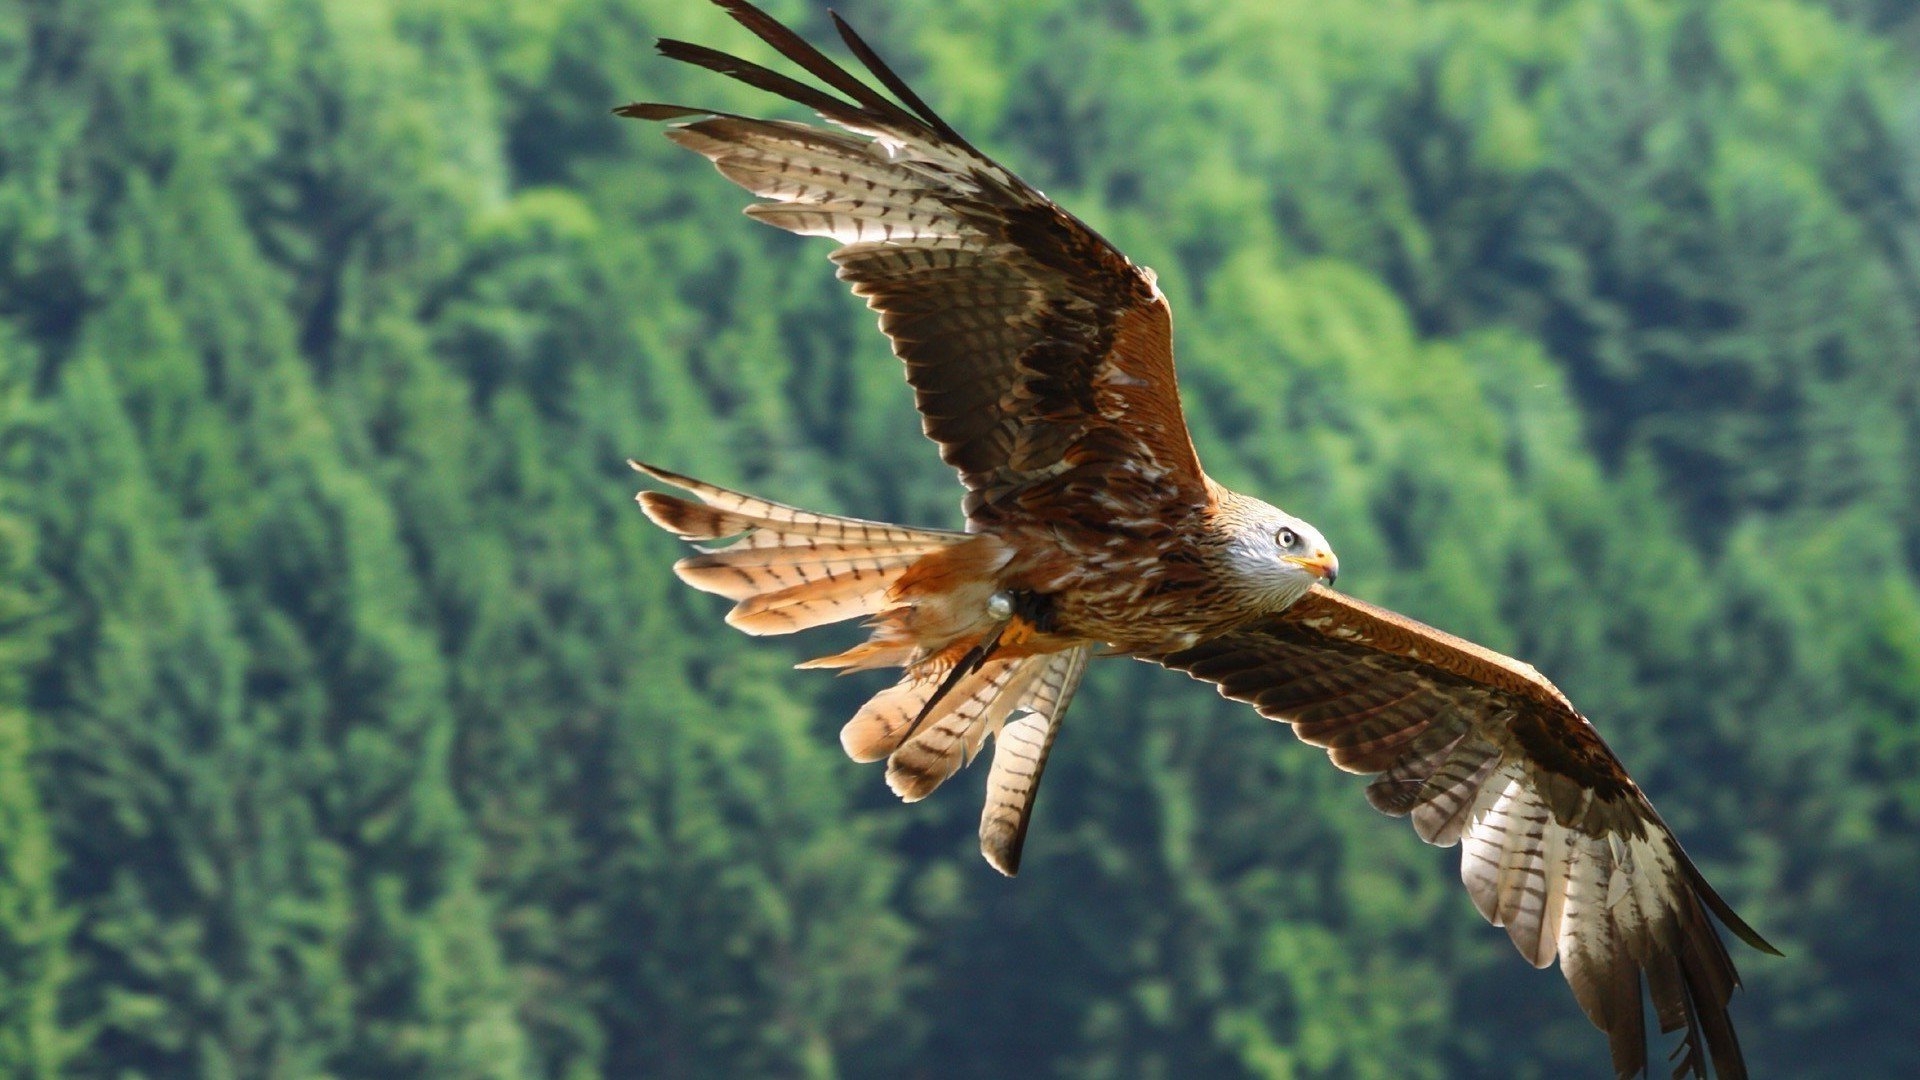 animals raptor bird eagle nature wildlife prey hawk bald flight outdoors wild falcon wing majestic bald eagle feather falconry freedom animal